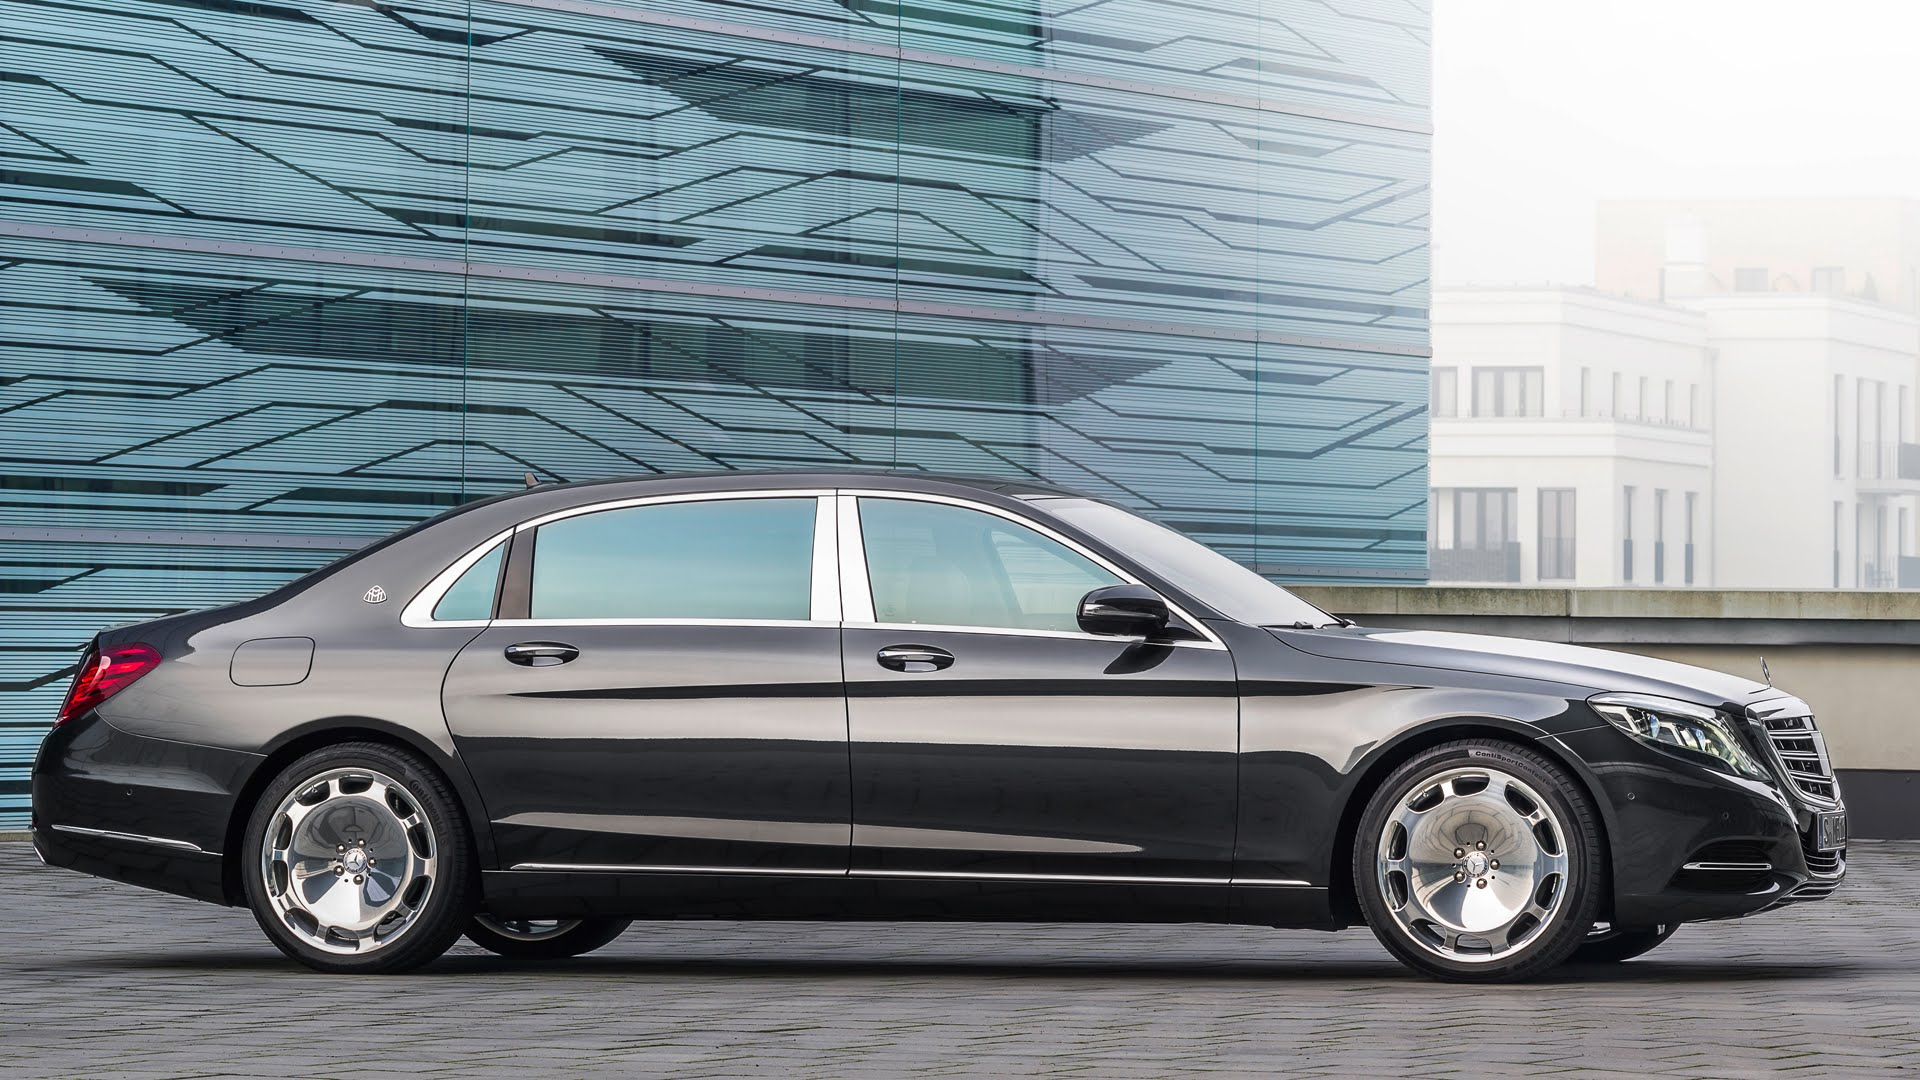 Mercedes-Maybach S-Class Wallpapers